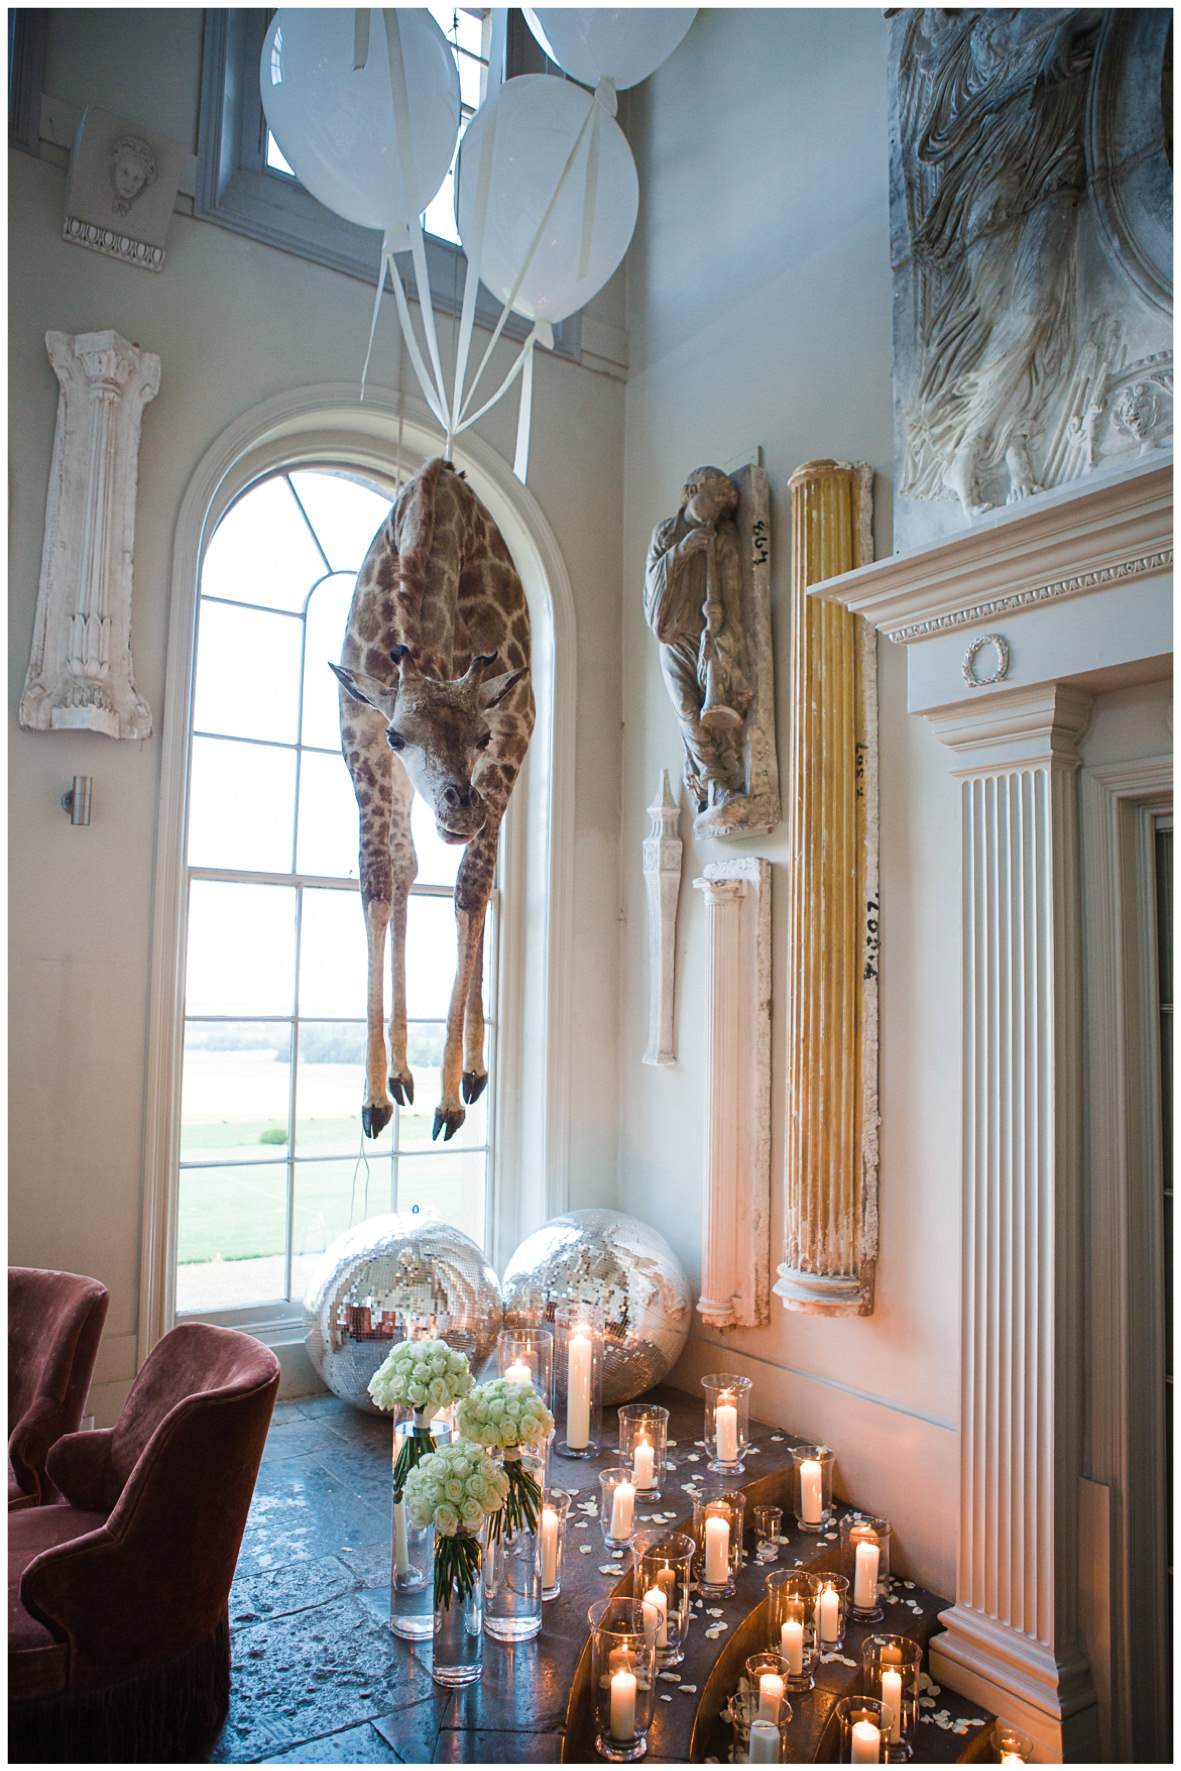 Lucy Davenport Photography, Aynhoe Park, Oxfordshire, wedding venue, Rock My Wedding, hanging giraffe